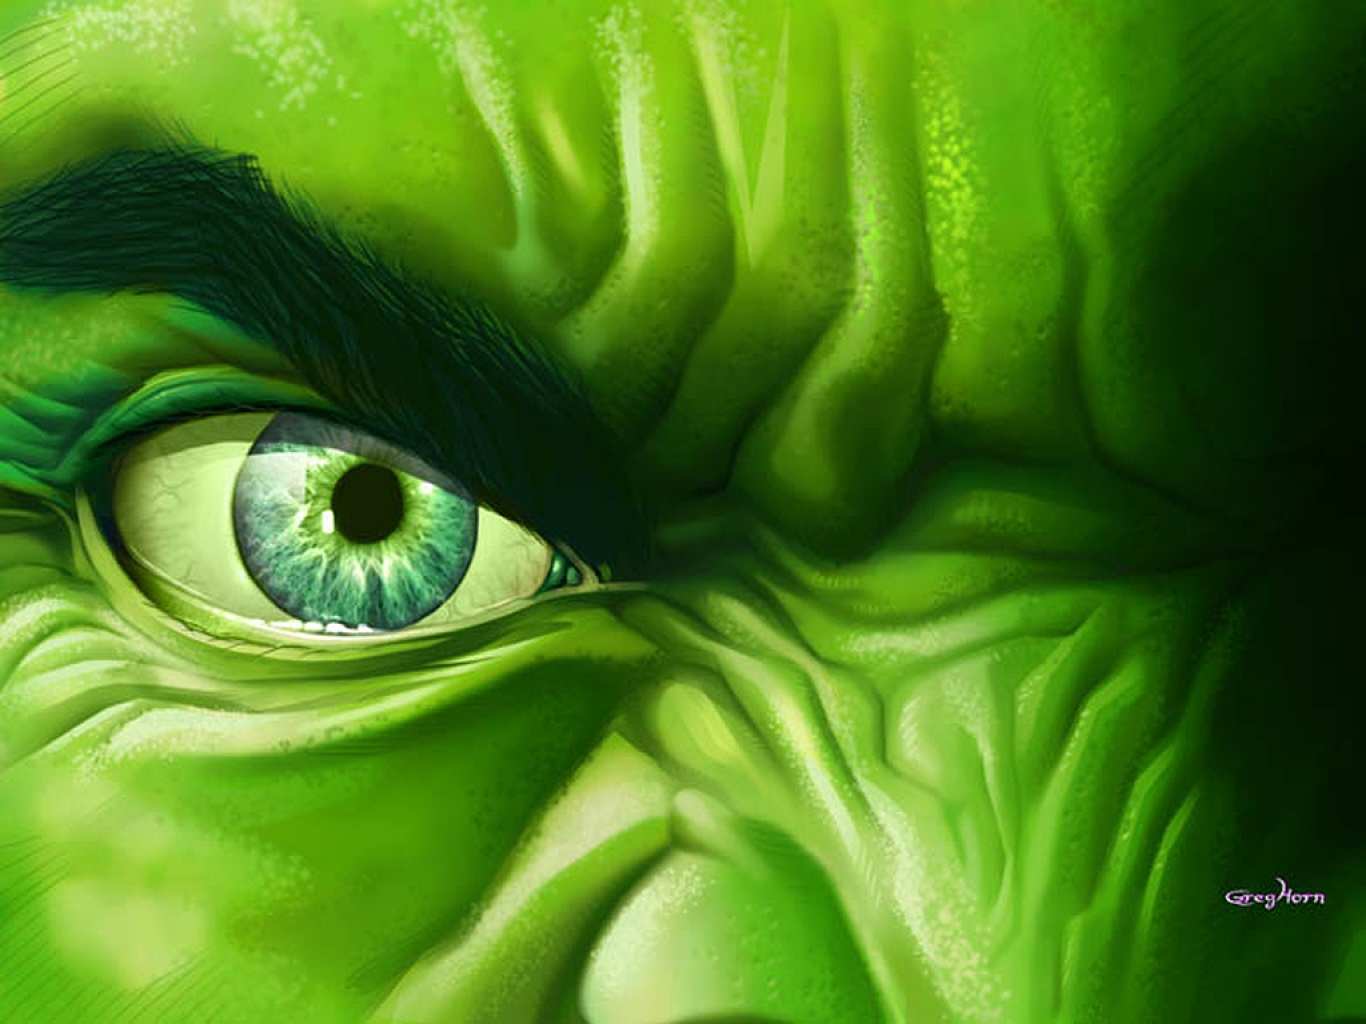 wallpaper free download of the face with a lot of anger hulk